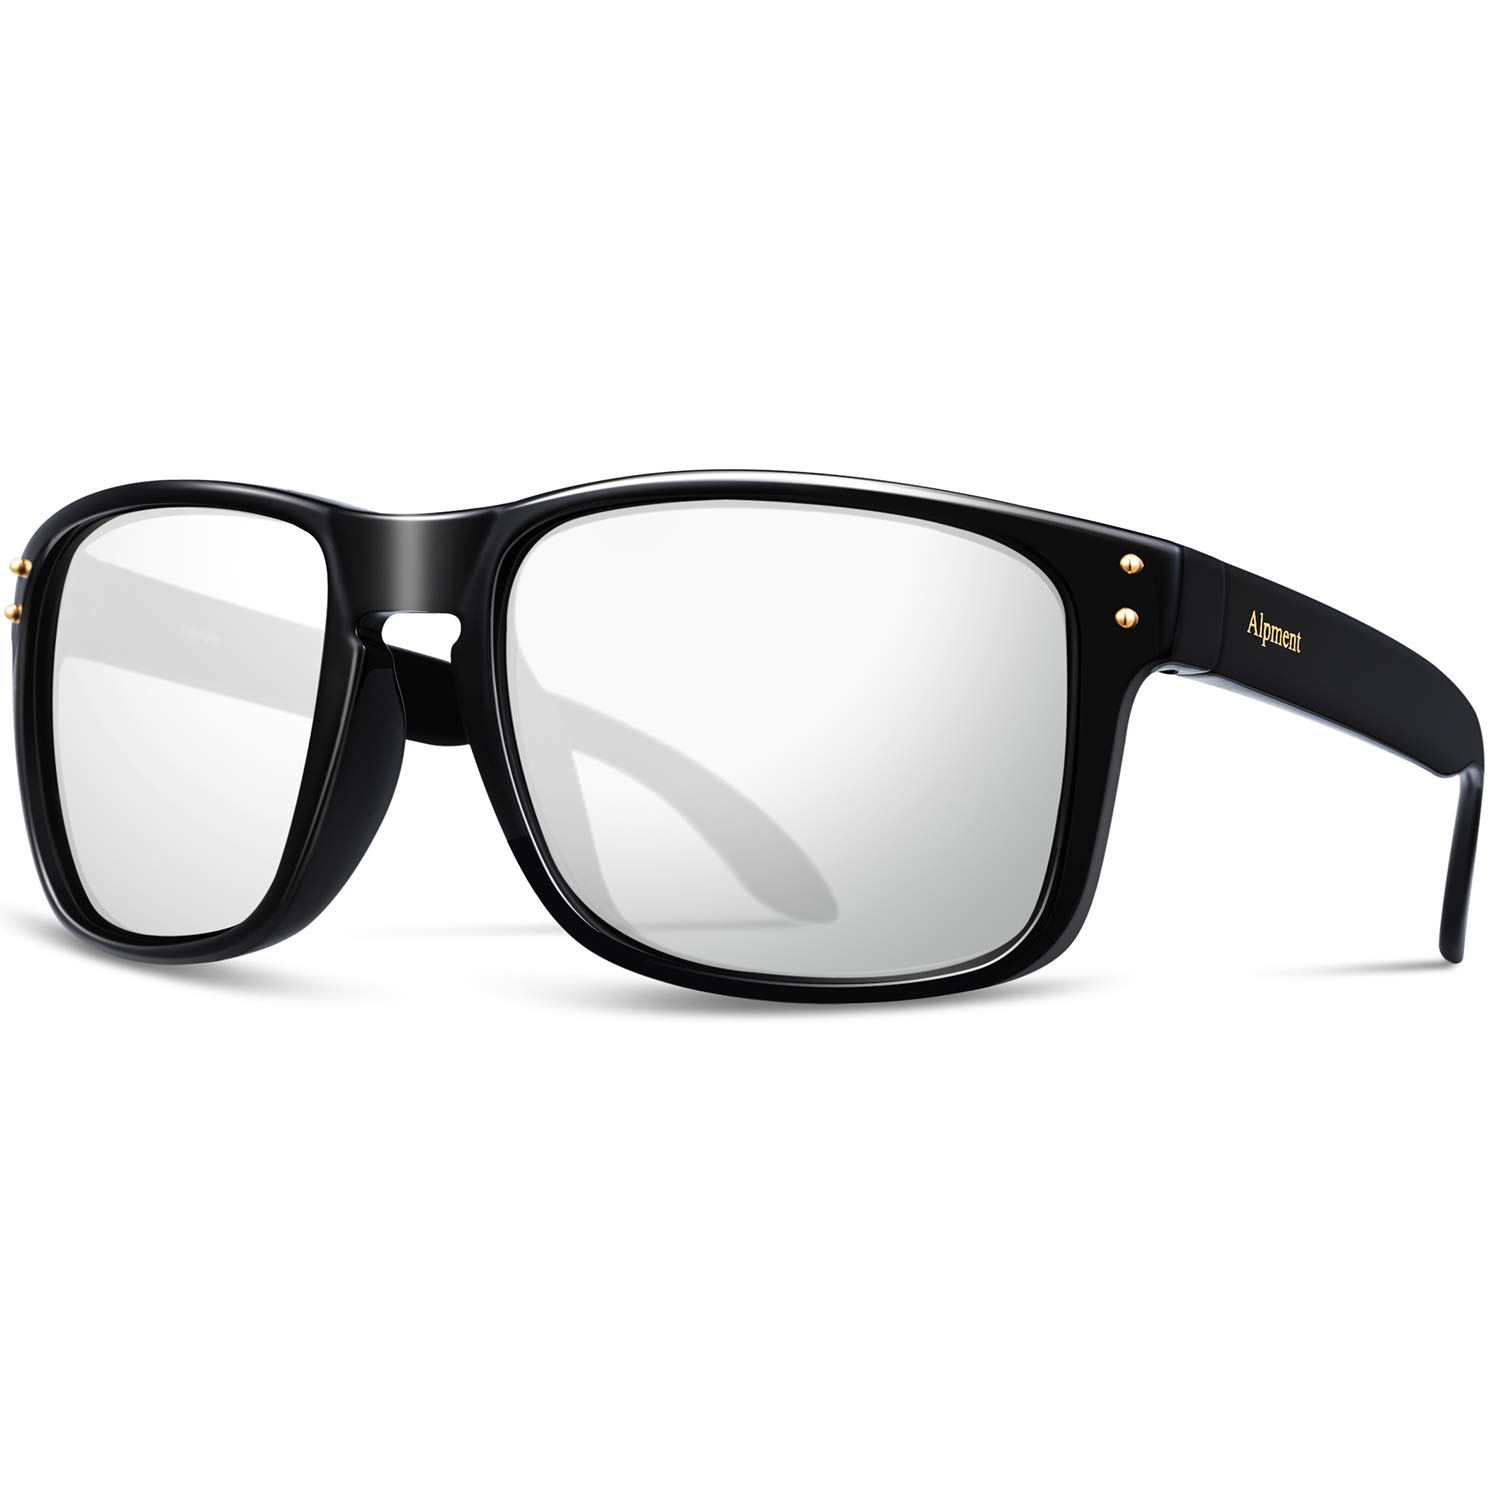 Bright Black&silver Alpment HD Polarized Sunglasses Lightweight Only 22g,UV400 Predection Driving Glasses Gift Case Multiple colors Choice